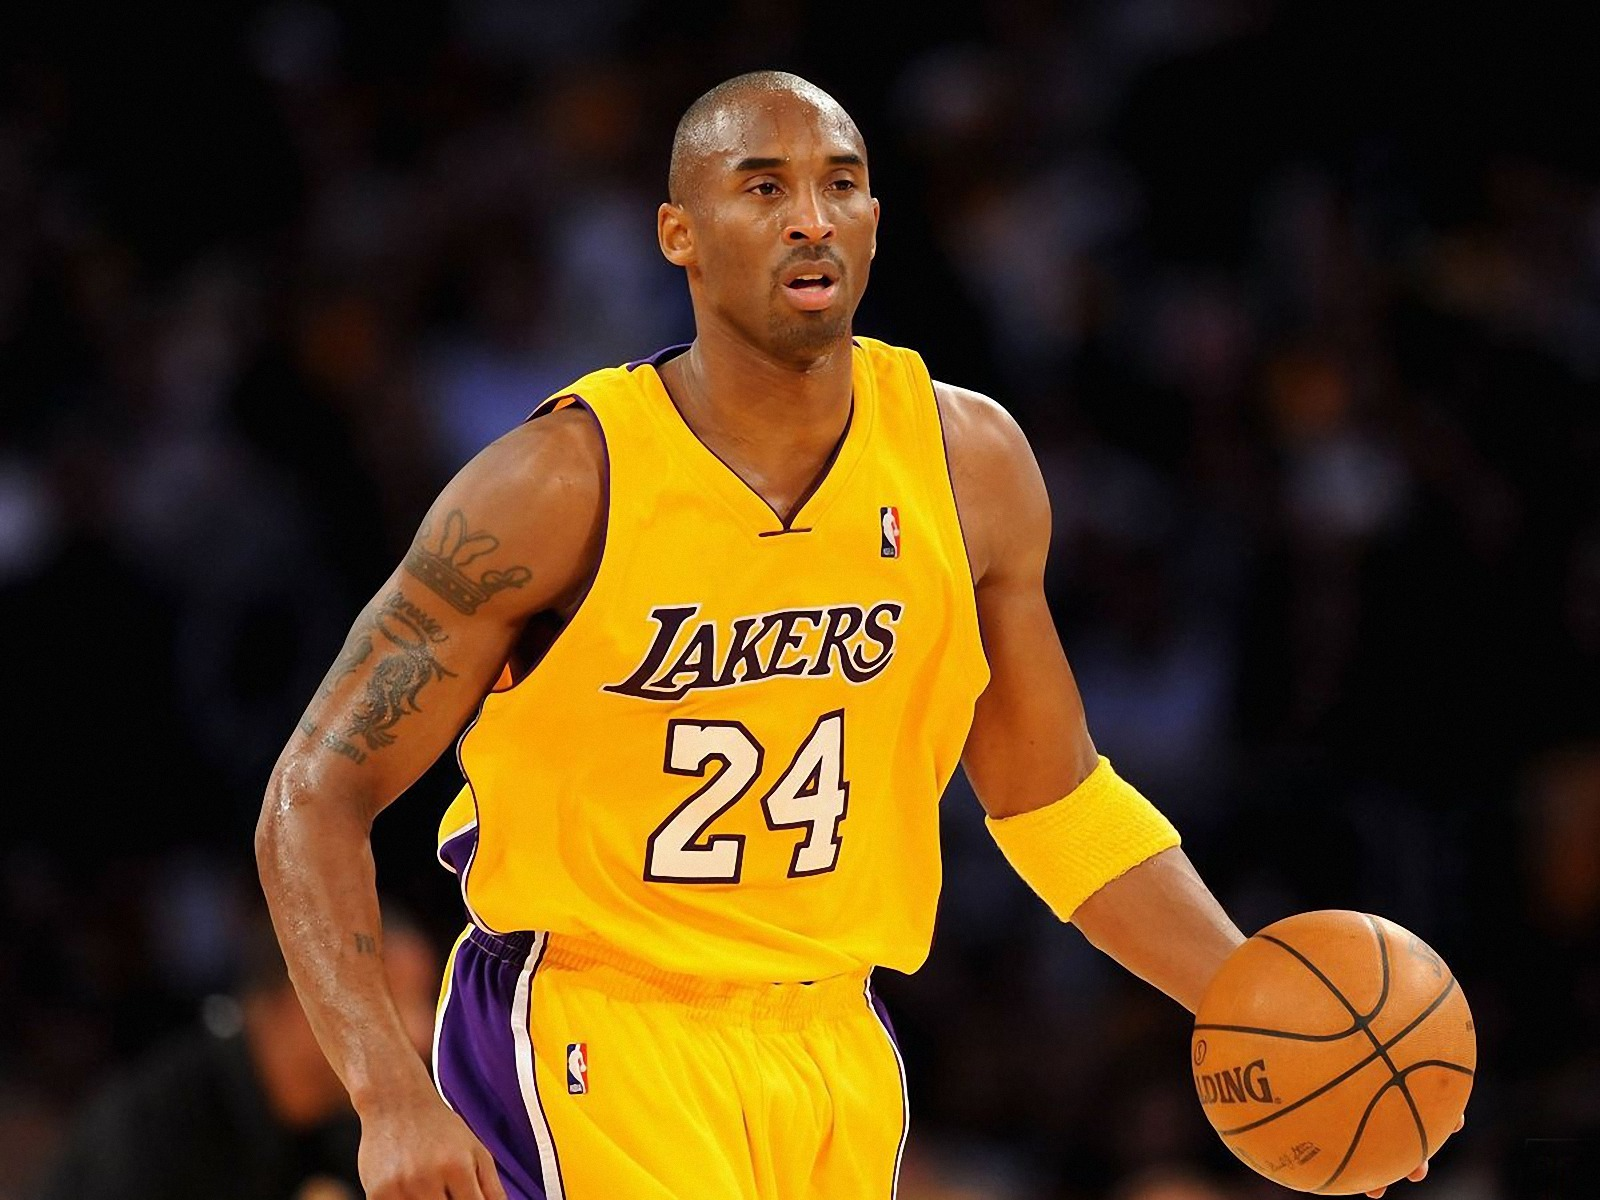 Kobe Bryant Net Worth, Age, Height, Profile, Wife, Shoes, Stats